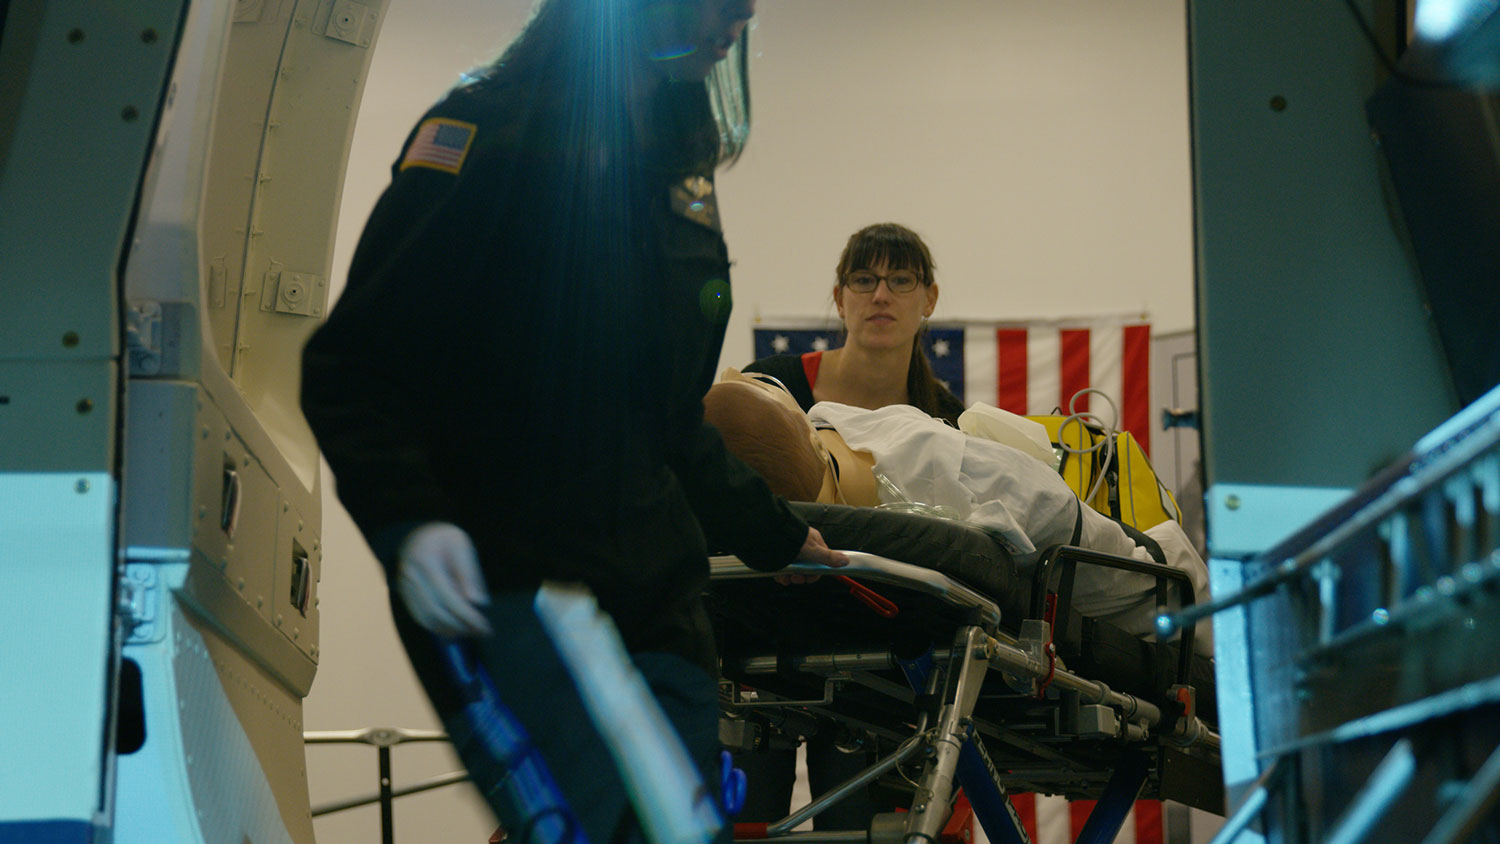 Rolling the patient into the simulator